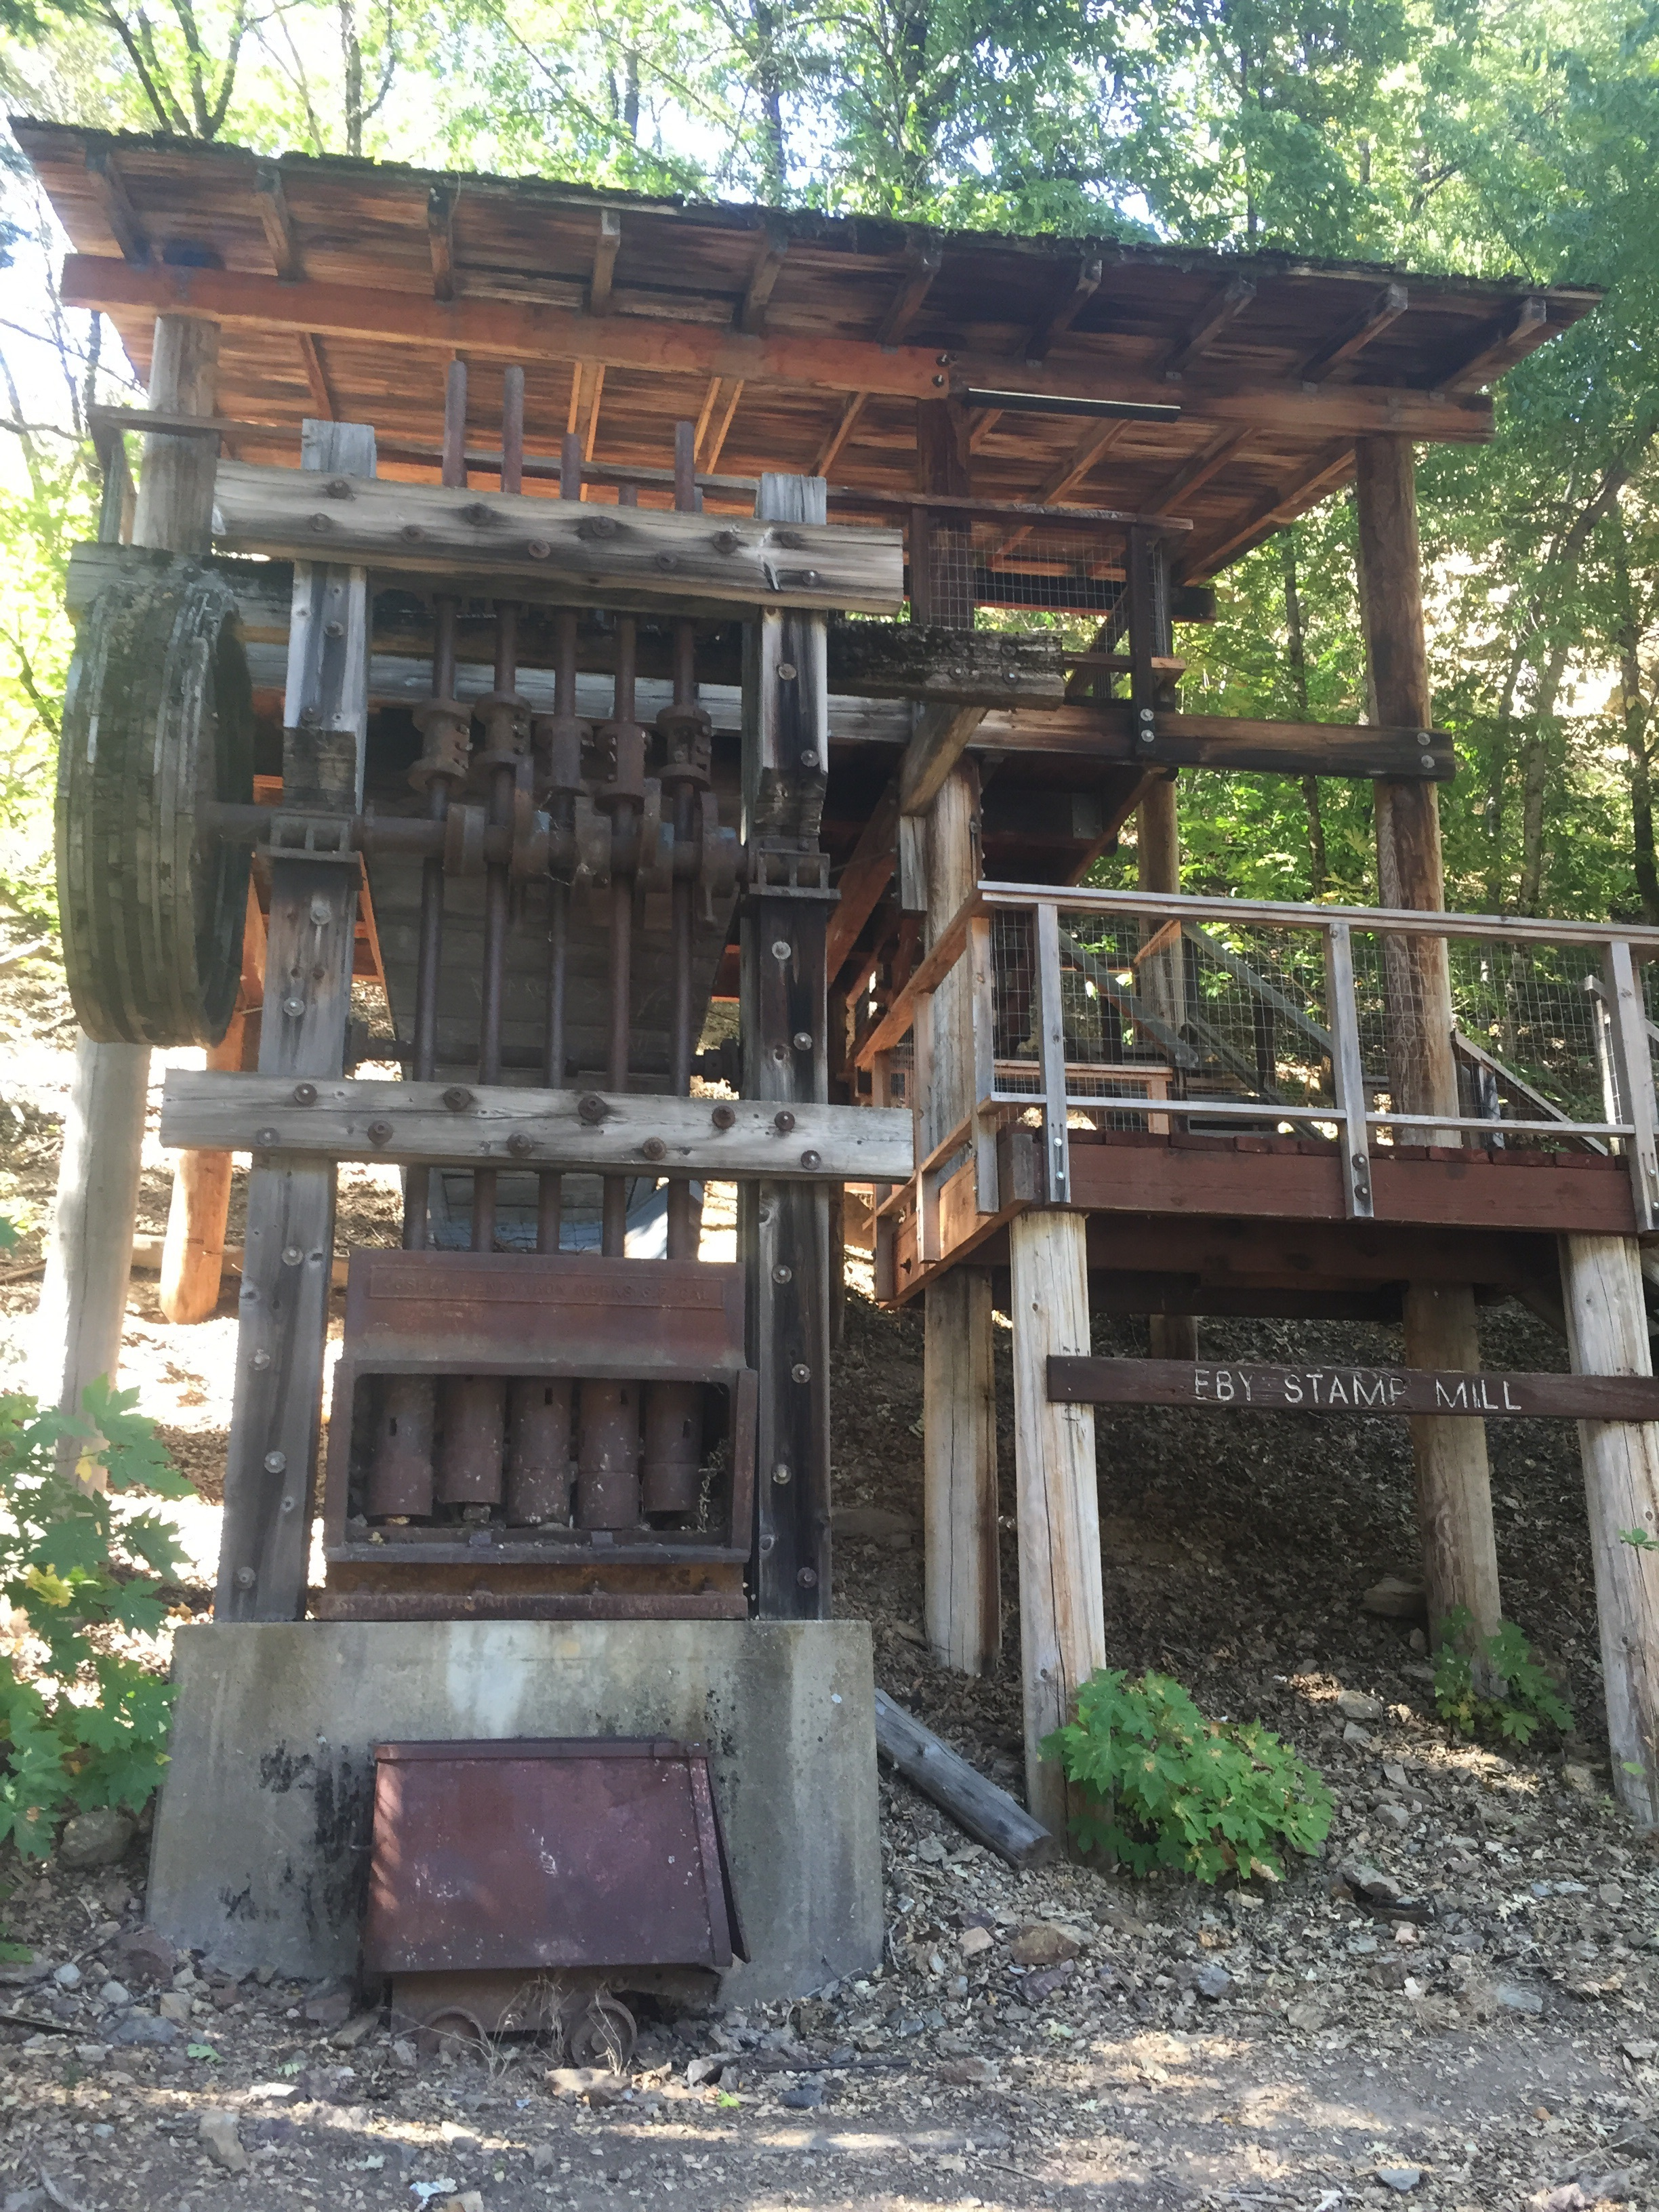 Some old mining equipment at the trailhead